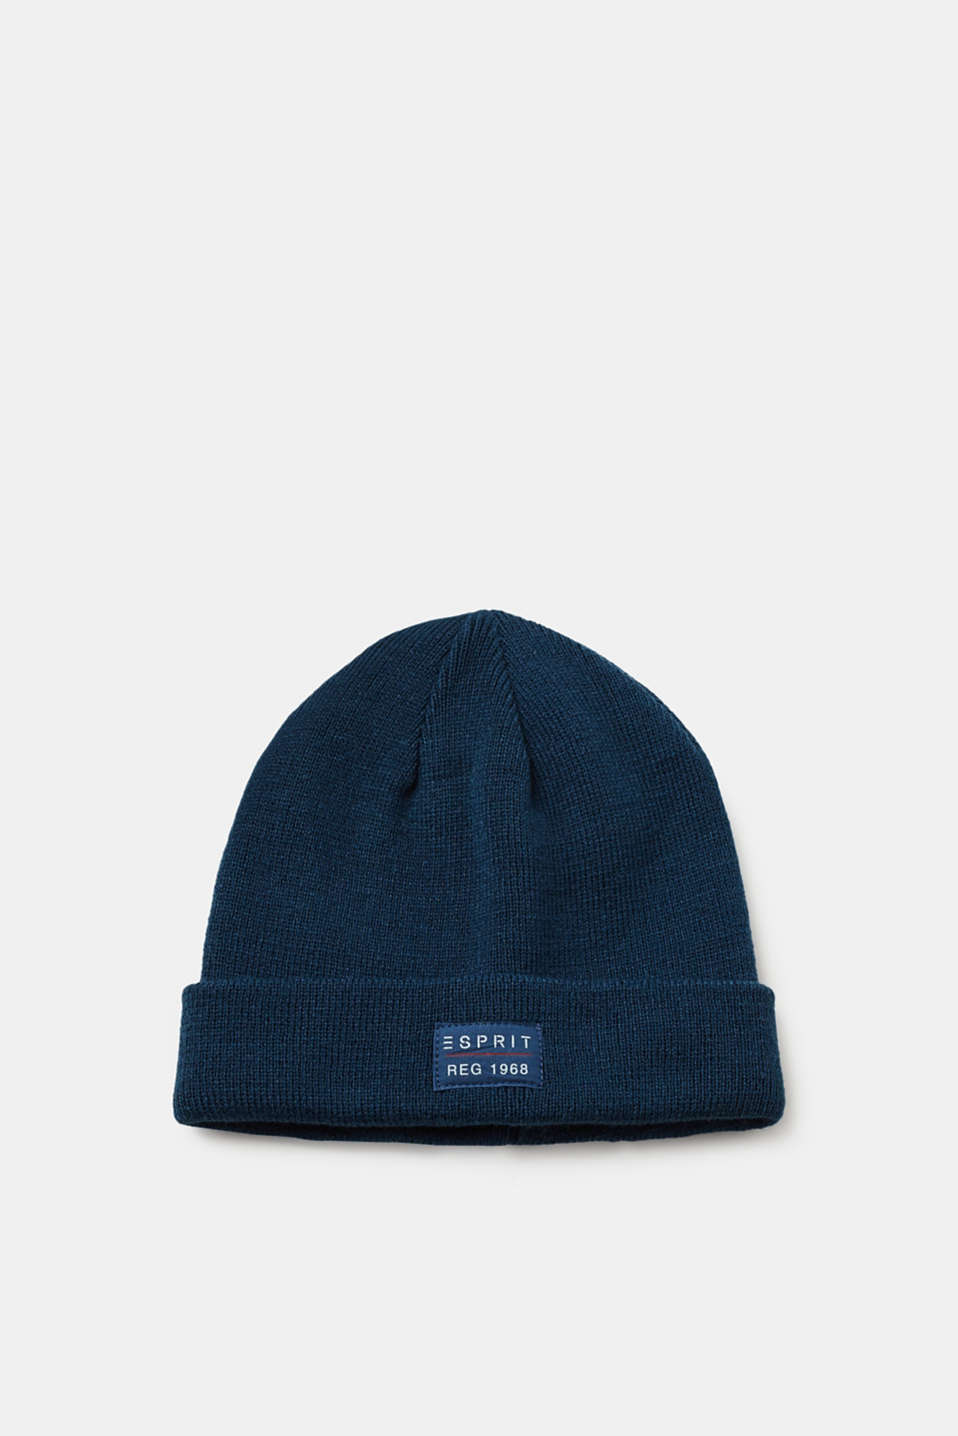 Esprit - Knitted hat with a turn-back cuff and a logo appliqué